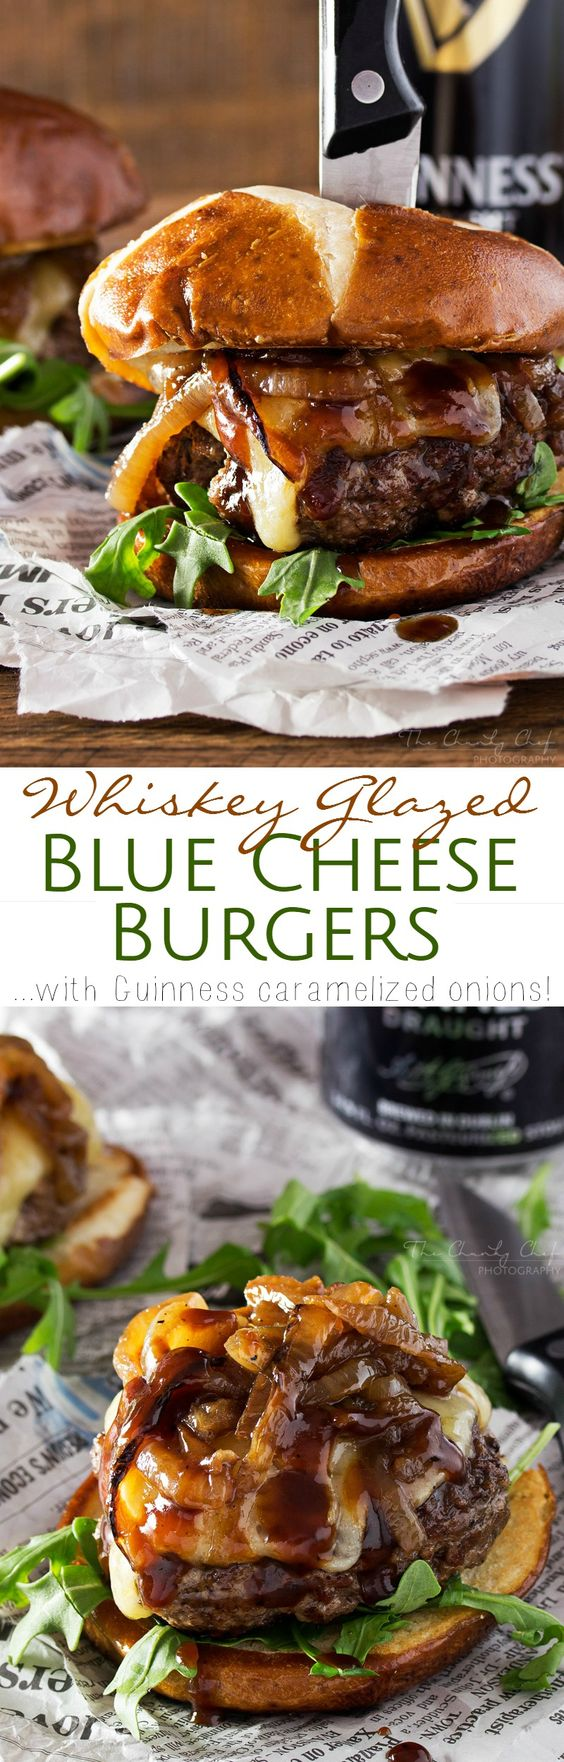 "Whiskey Glazed Blue Cheese Burgers with Guinness Caramelized Onions Recipe via The Chunky Chef ""These blue cheese burgers are brushed with a homemade whiskey glazed, topped with Irish cheese, and smothered in Guinness caramelized onions!"" #burgers #gourmetburgers #burgerrecipes #cookouts #grilling #barbecue #hamburgers #fathersday #fathersdayfood #bbq #partyfood #tailgating #superbowlfood #superbowl #summerfood #easylunches #easydinners #easysuppers"